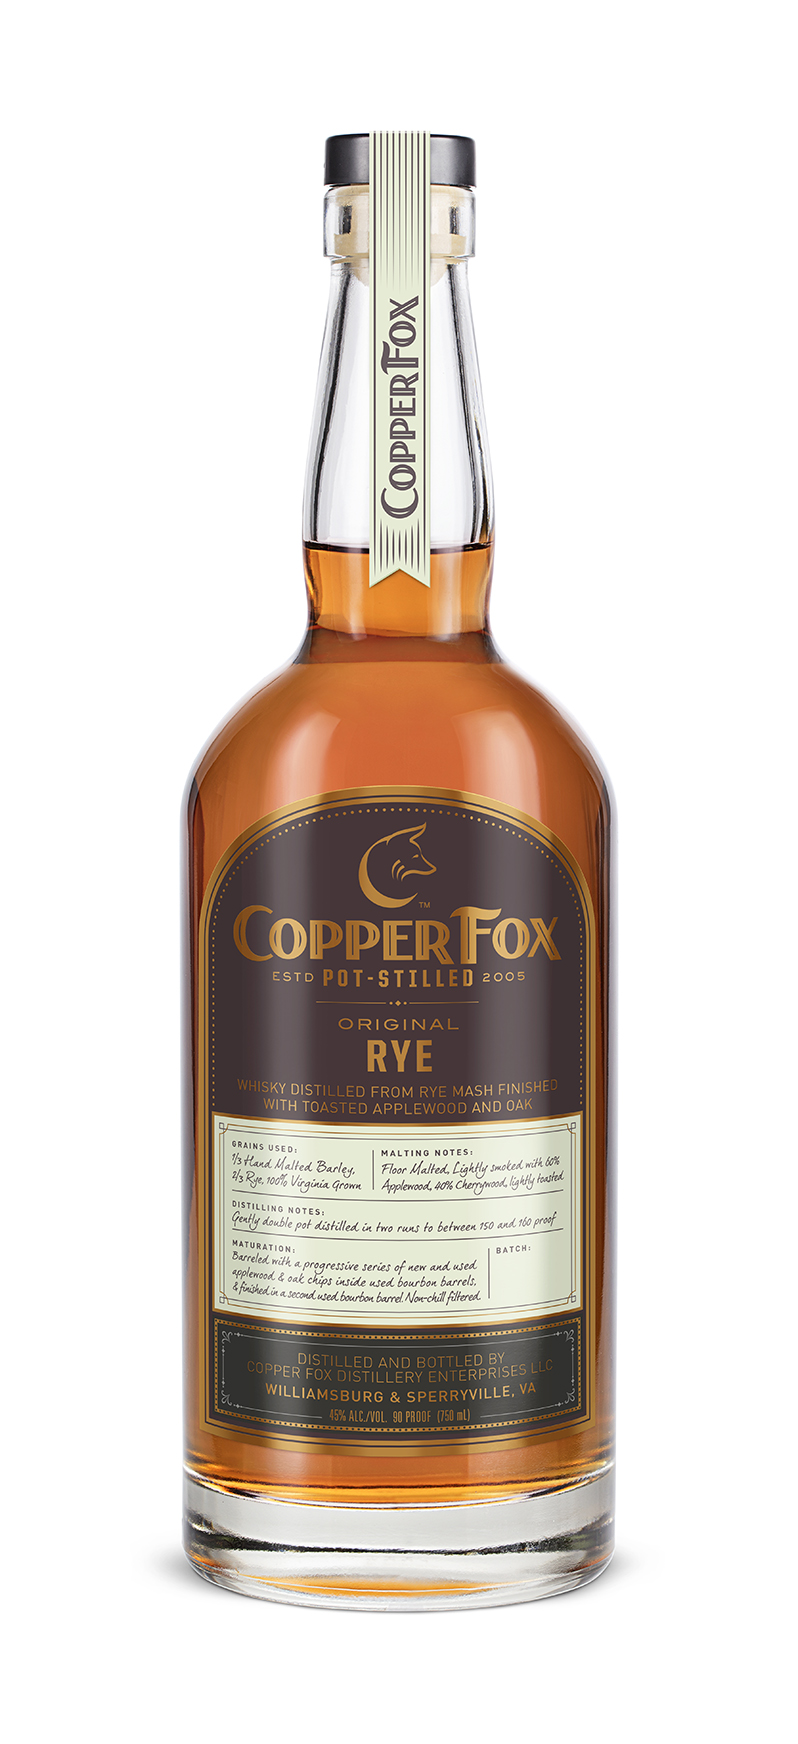 "copper fox rye - ""Copper color, vibrant aromas of clay, butter roasted chestnuts, pickling spices, and rye grain sacks with a silky, dry-yet-fruity, medium-to-full body and a honeyed rye toast, peppery spice, cola, fig, and mineral laden finish. A spot-on, wonderfully balanced rye whisky for all applications and occasions.""A Process Like No OtherA remarkable rye whisky made with an extraordinarily generous amount of our smoked malt. The mash bill is 2/3 Virginia rye and 1/3 Virginia Thoroughbred hand-malted barley—kiln dried with apple wood and cherry wood smoke. Double pot-stilled to between 150 and 160 proof and aged with a progressive series of new and used apple wood and oak chips inside used bourbon barrels. Our innovative aging process results in a truly unique rye whisky that is savory and complex with the characteristic Copper Fox finish.‹ Previous Back to Gallery Next ›"